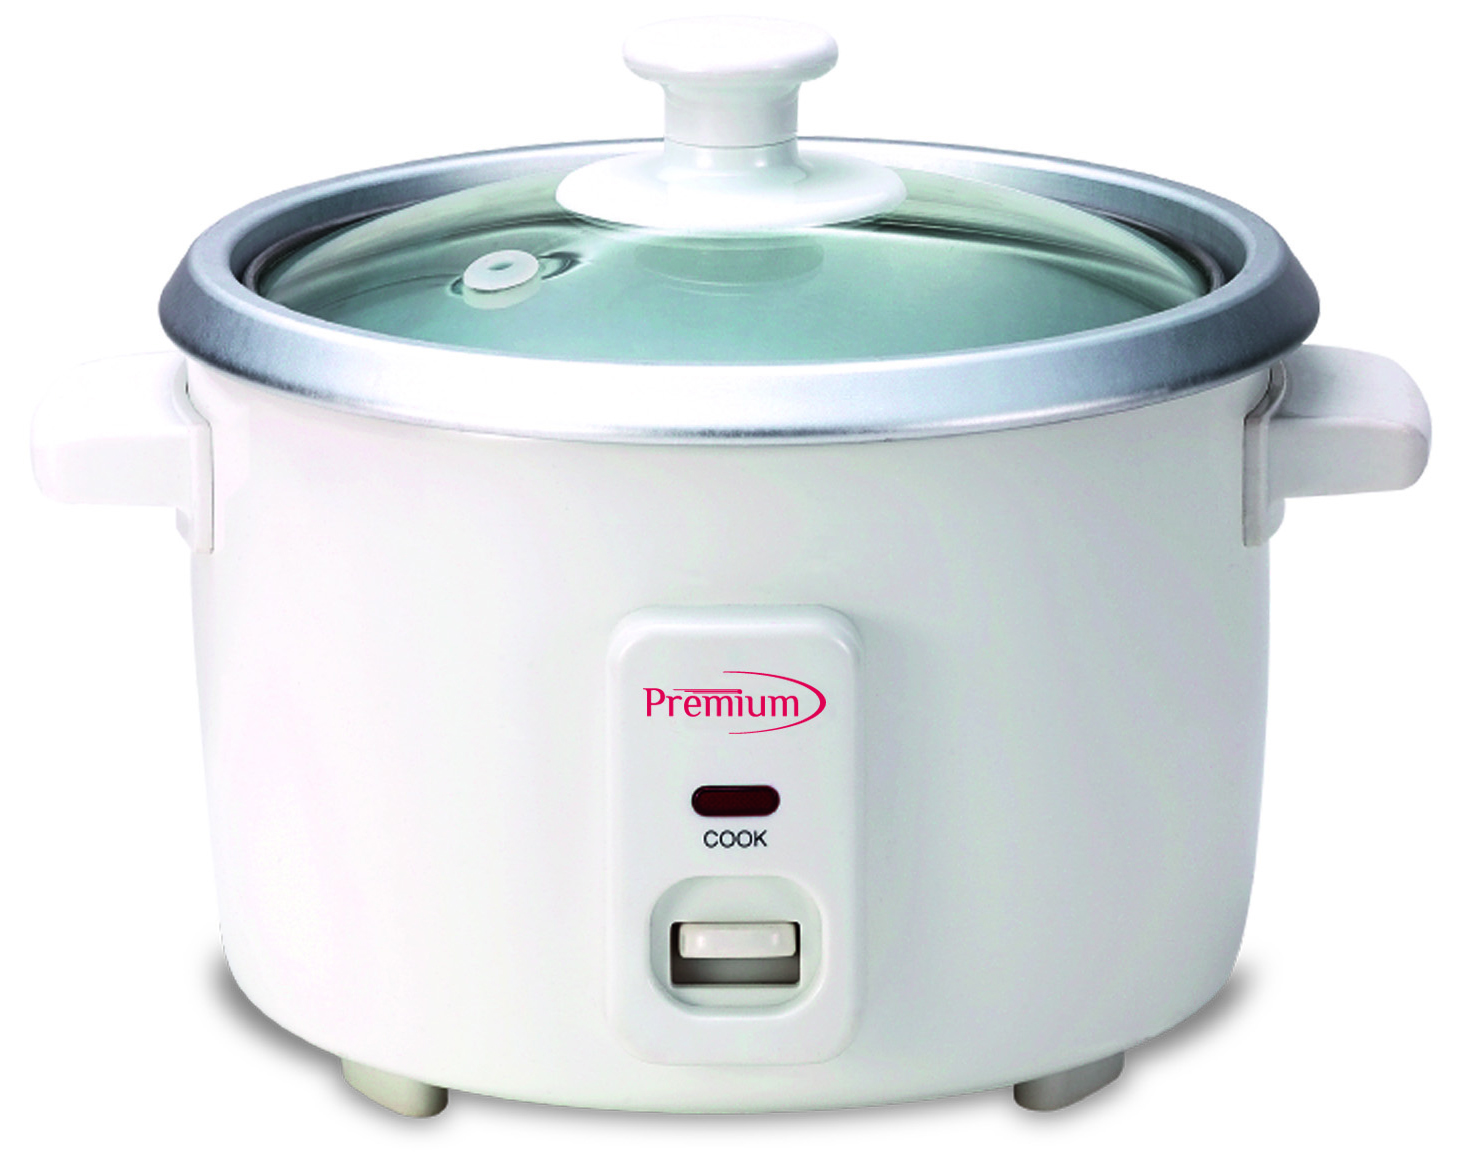 Premium Appliances 8 Cup Rice Cooker